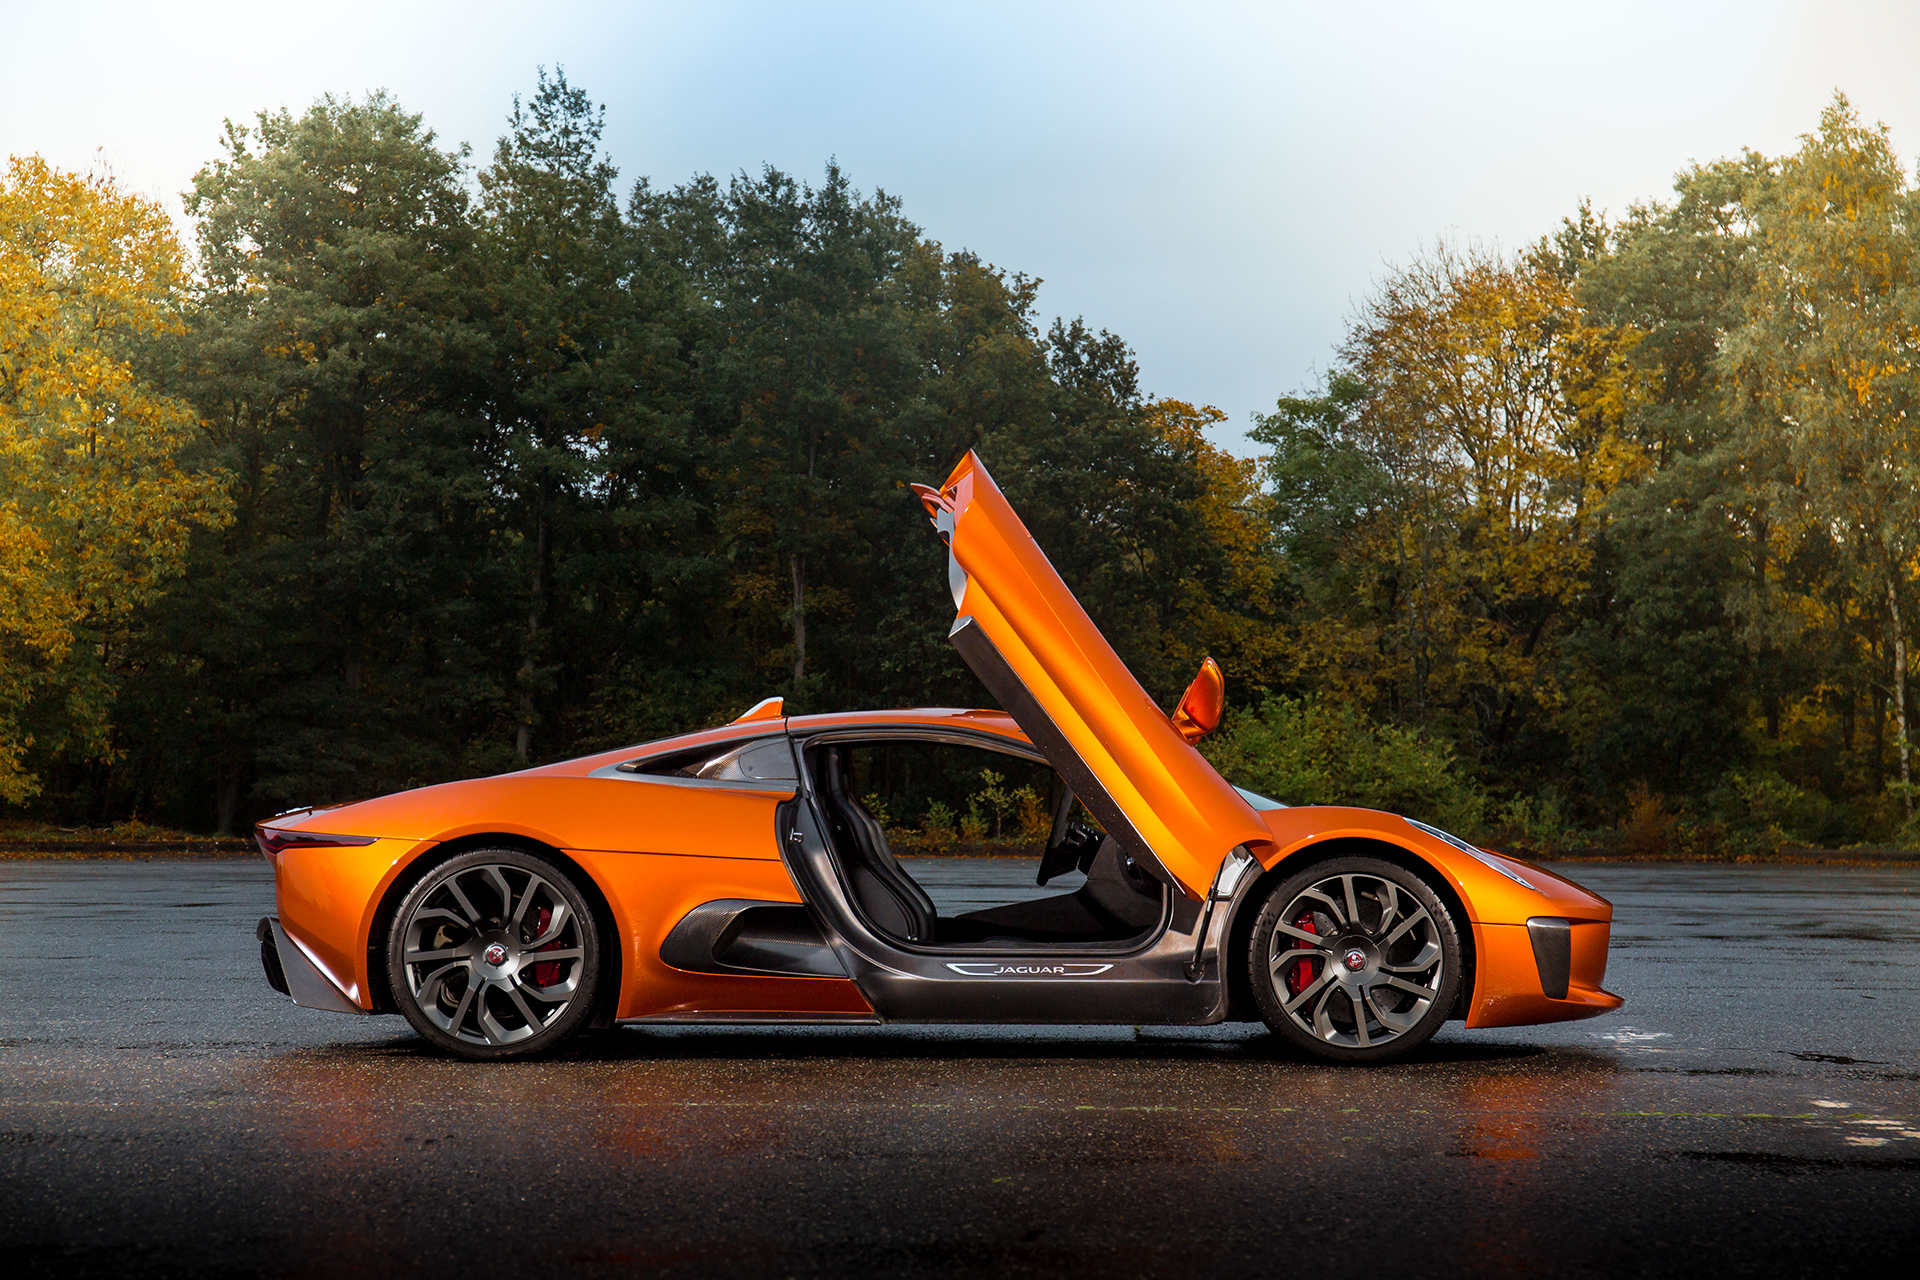 Jaguar C-X75 - Spectre - 2015 - profil / side-face - portes ouvertes / open doors